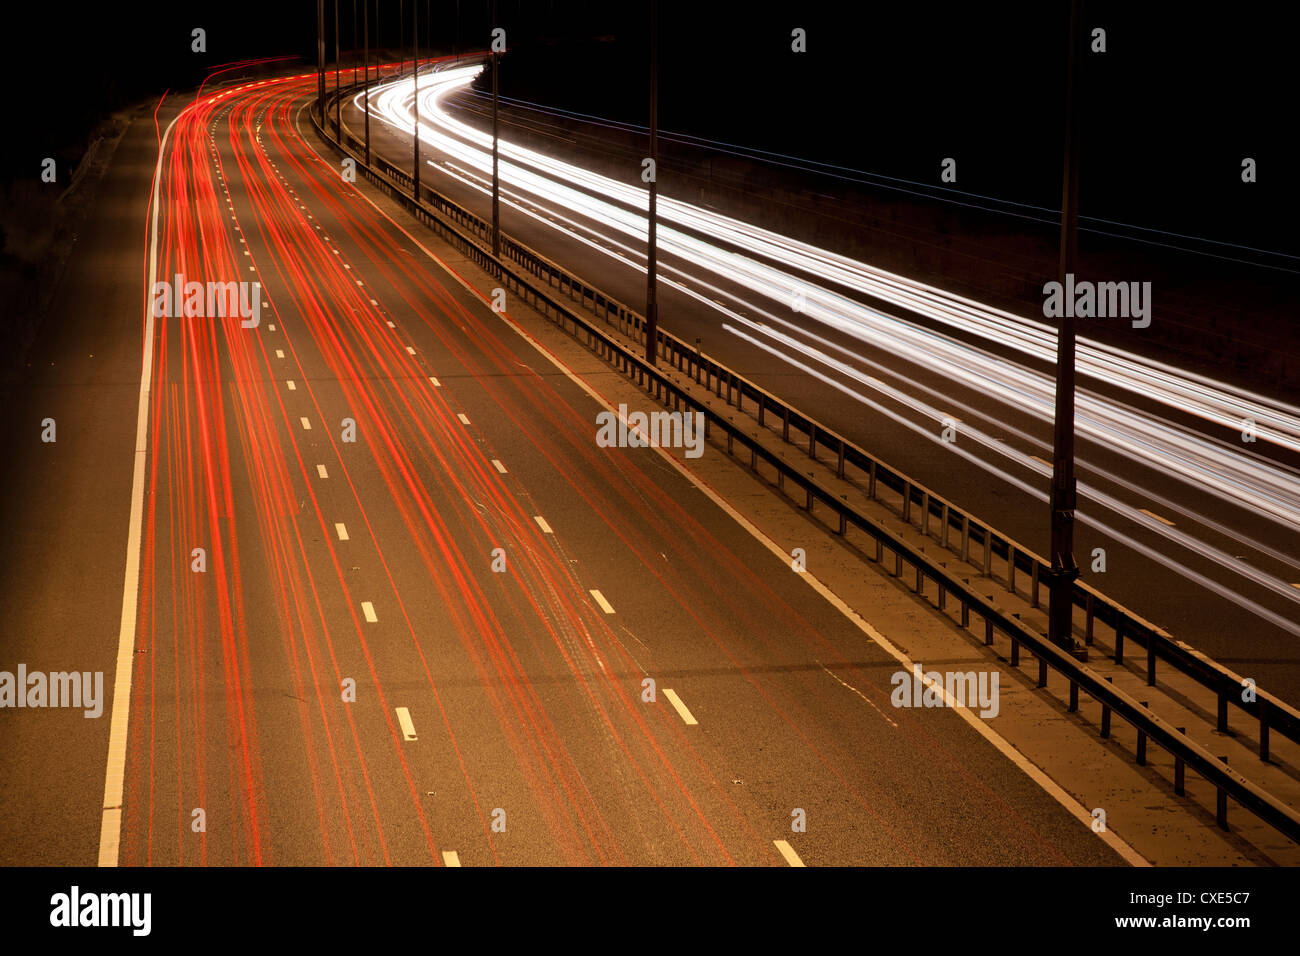 Light trails on M25 motorway at night, near London, England, UK, Europe. - Stock Image